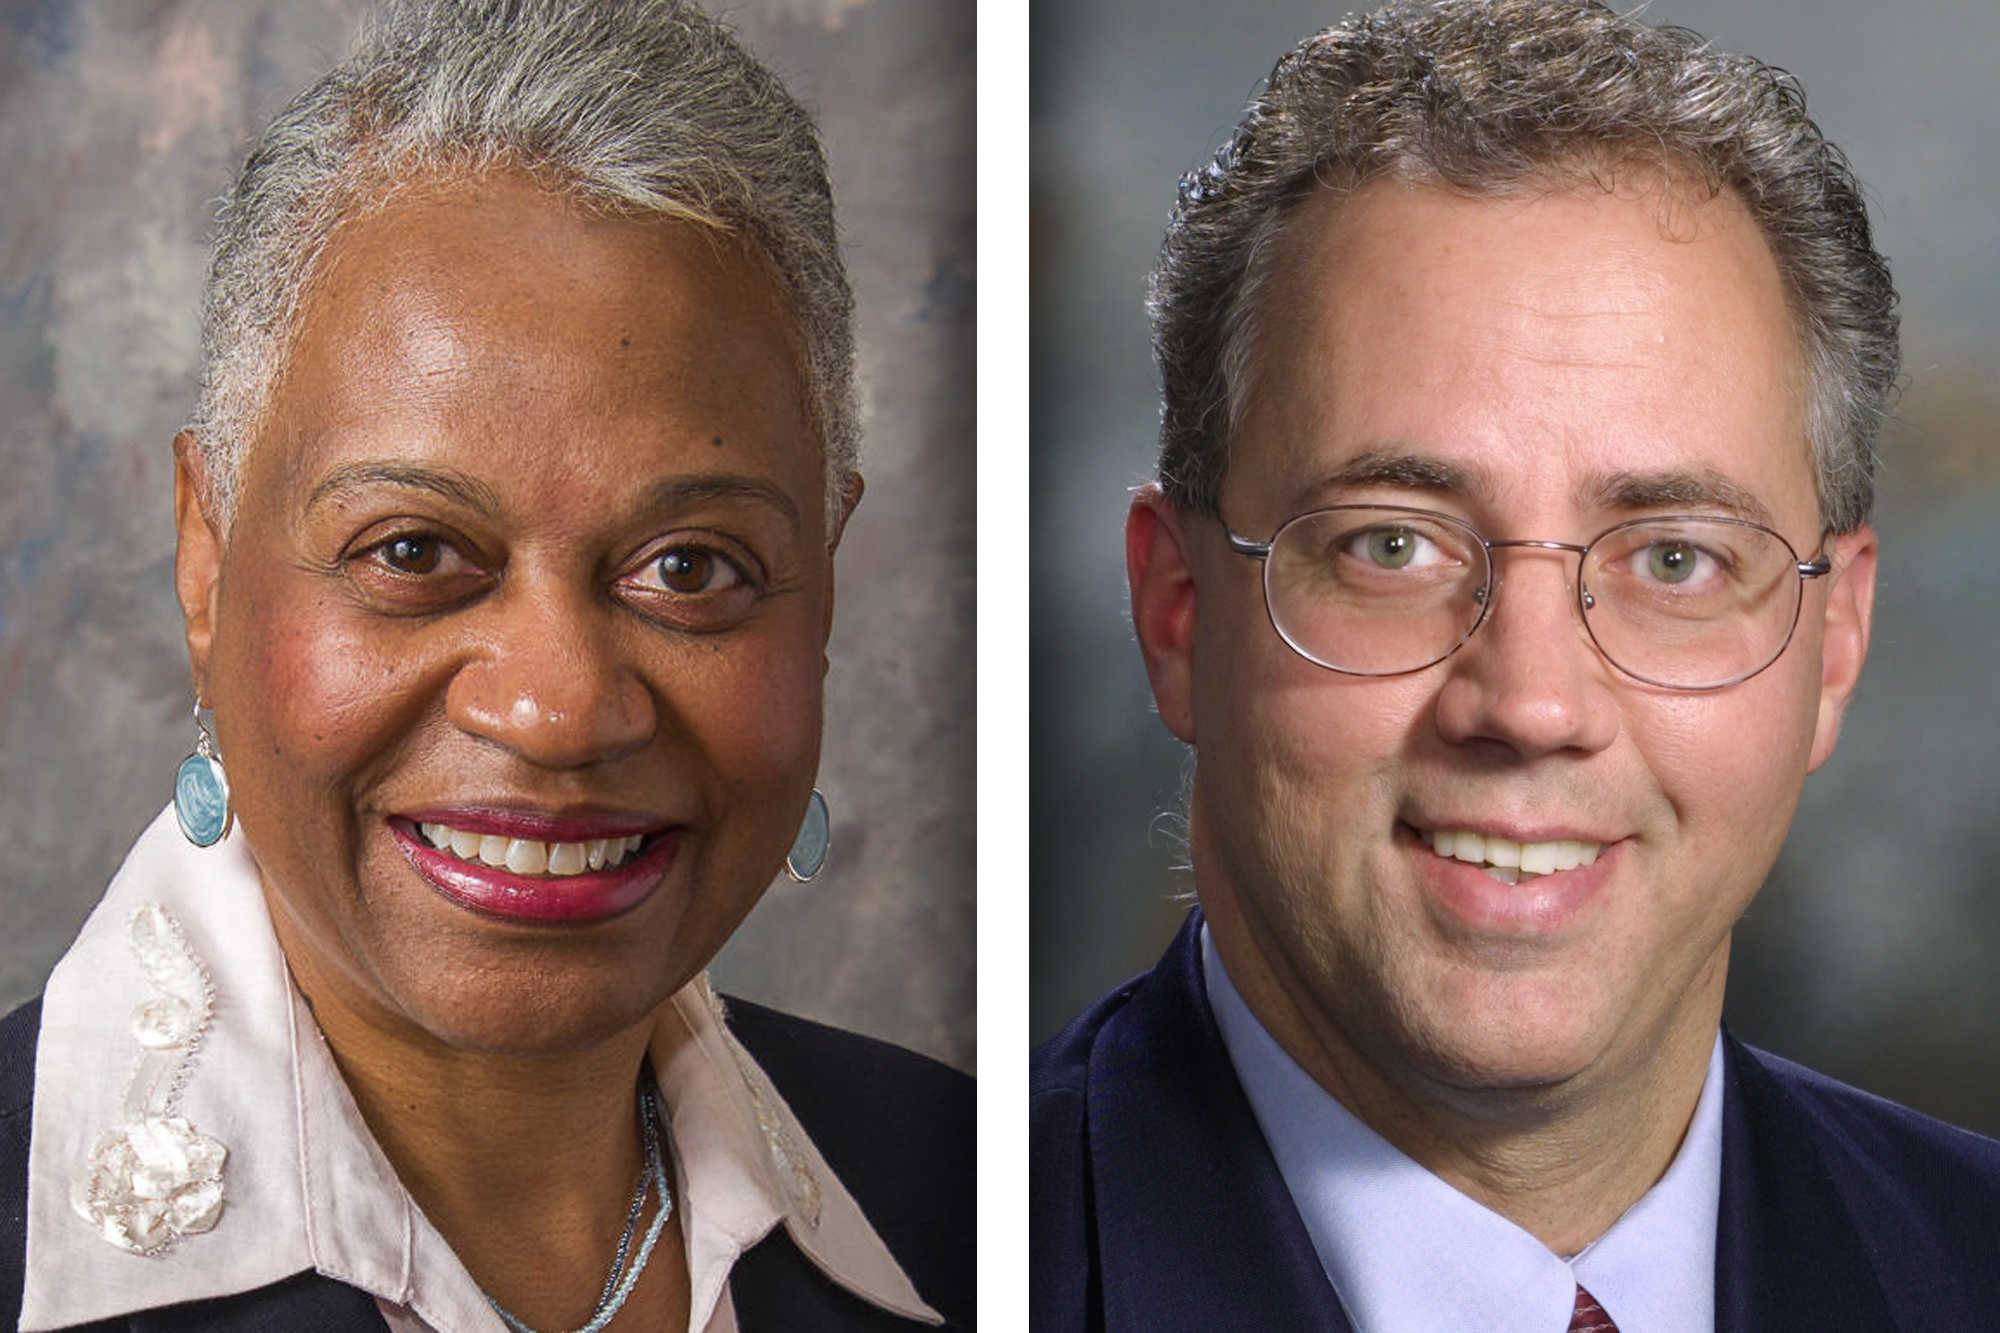 Democrat Regina Brent is challenging Republican incumbent James Healy for a four-year seat on the DuPage County Board representing District 5.